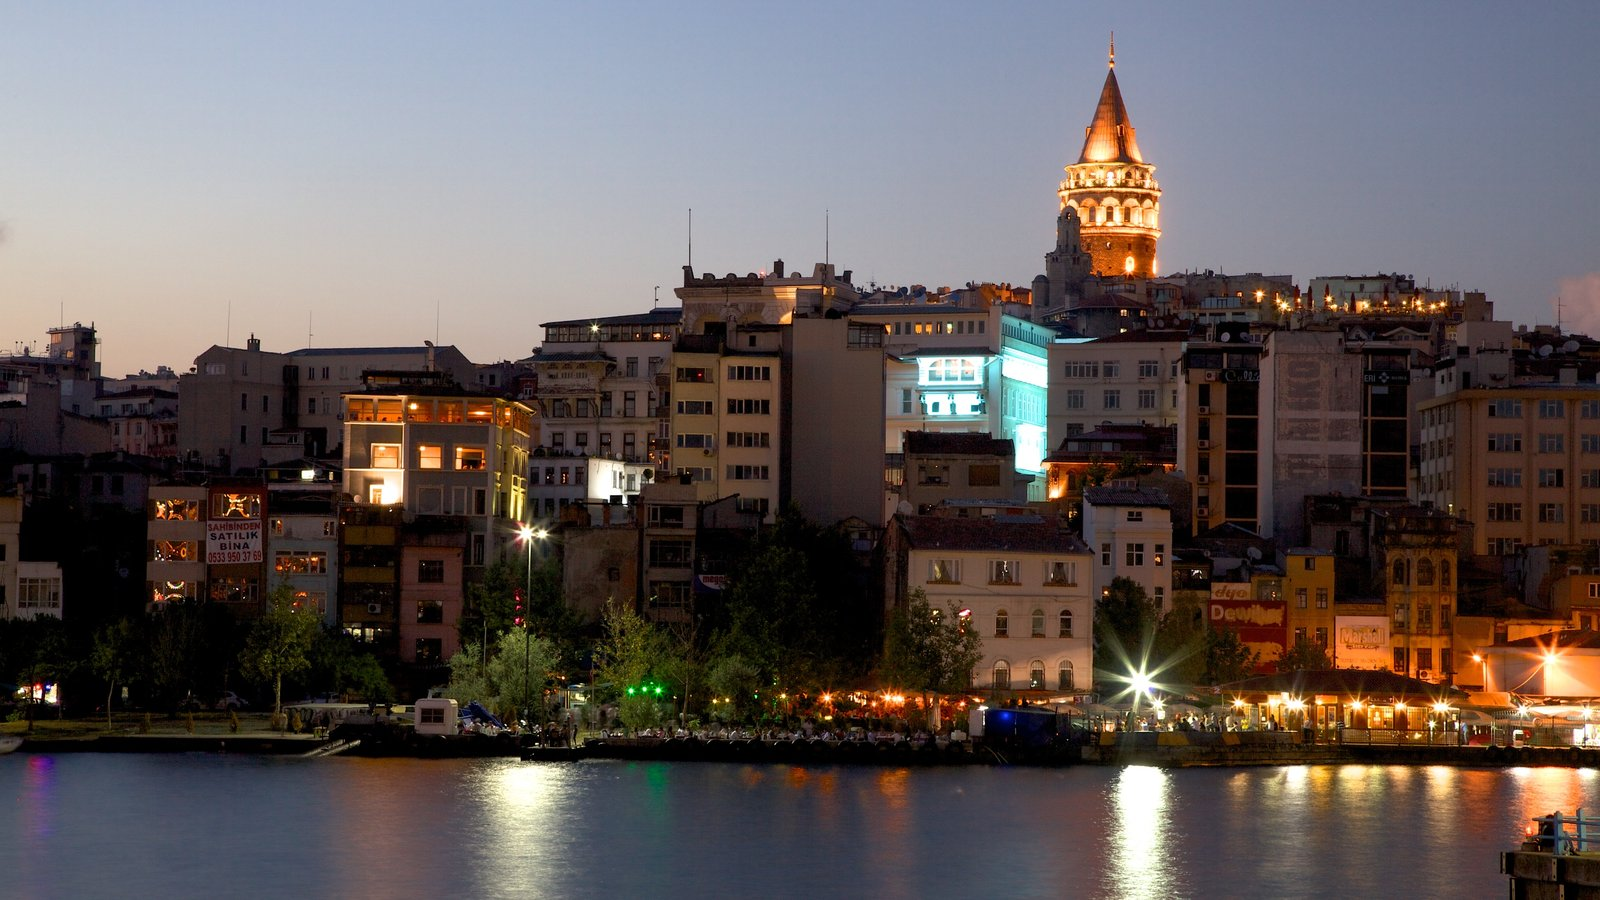 Galata Tower featuring night scenes, skyline and a city